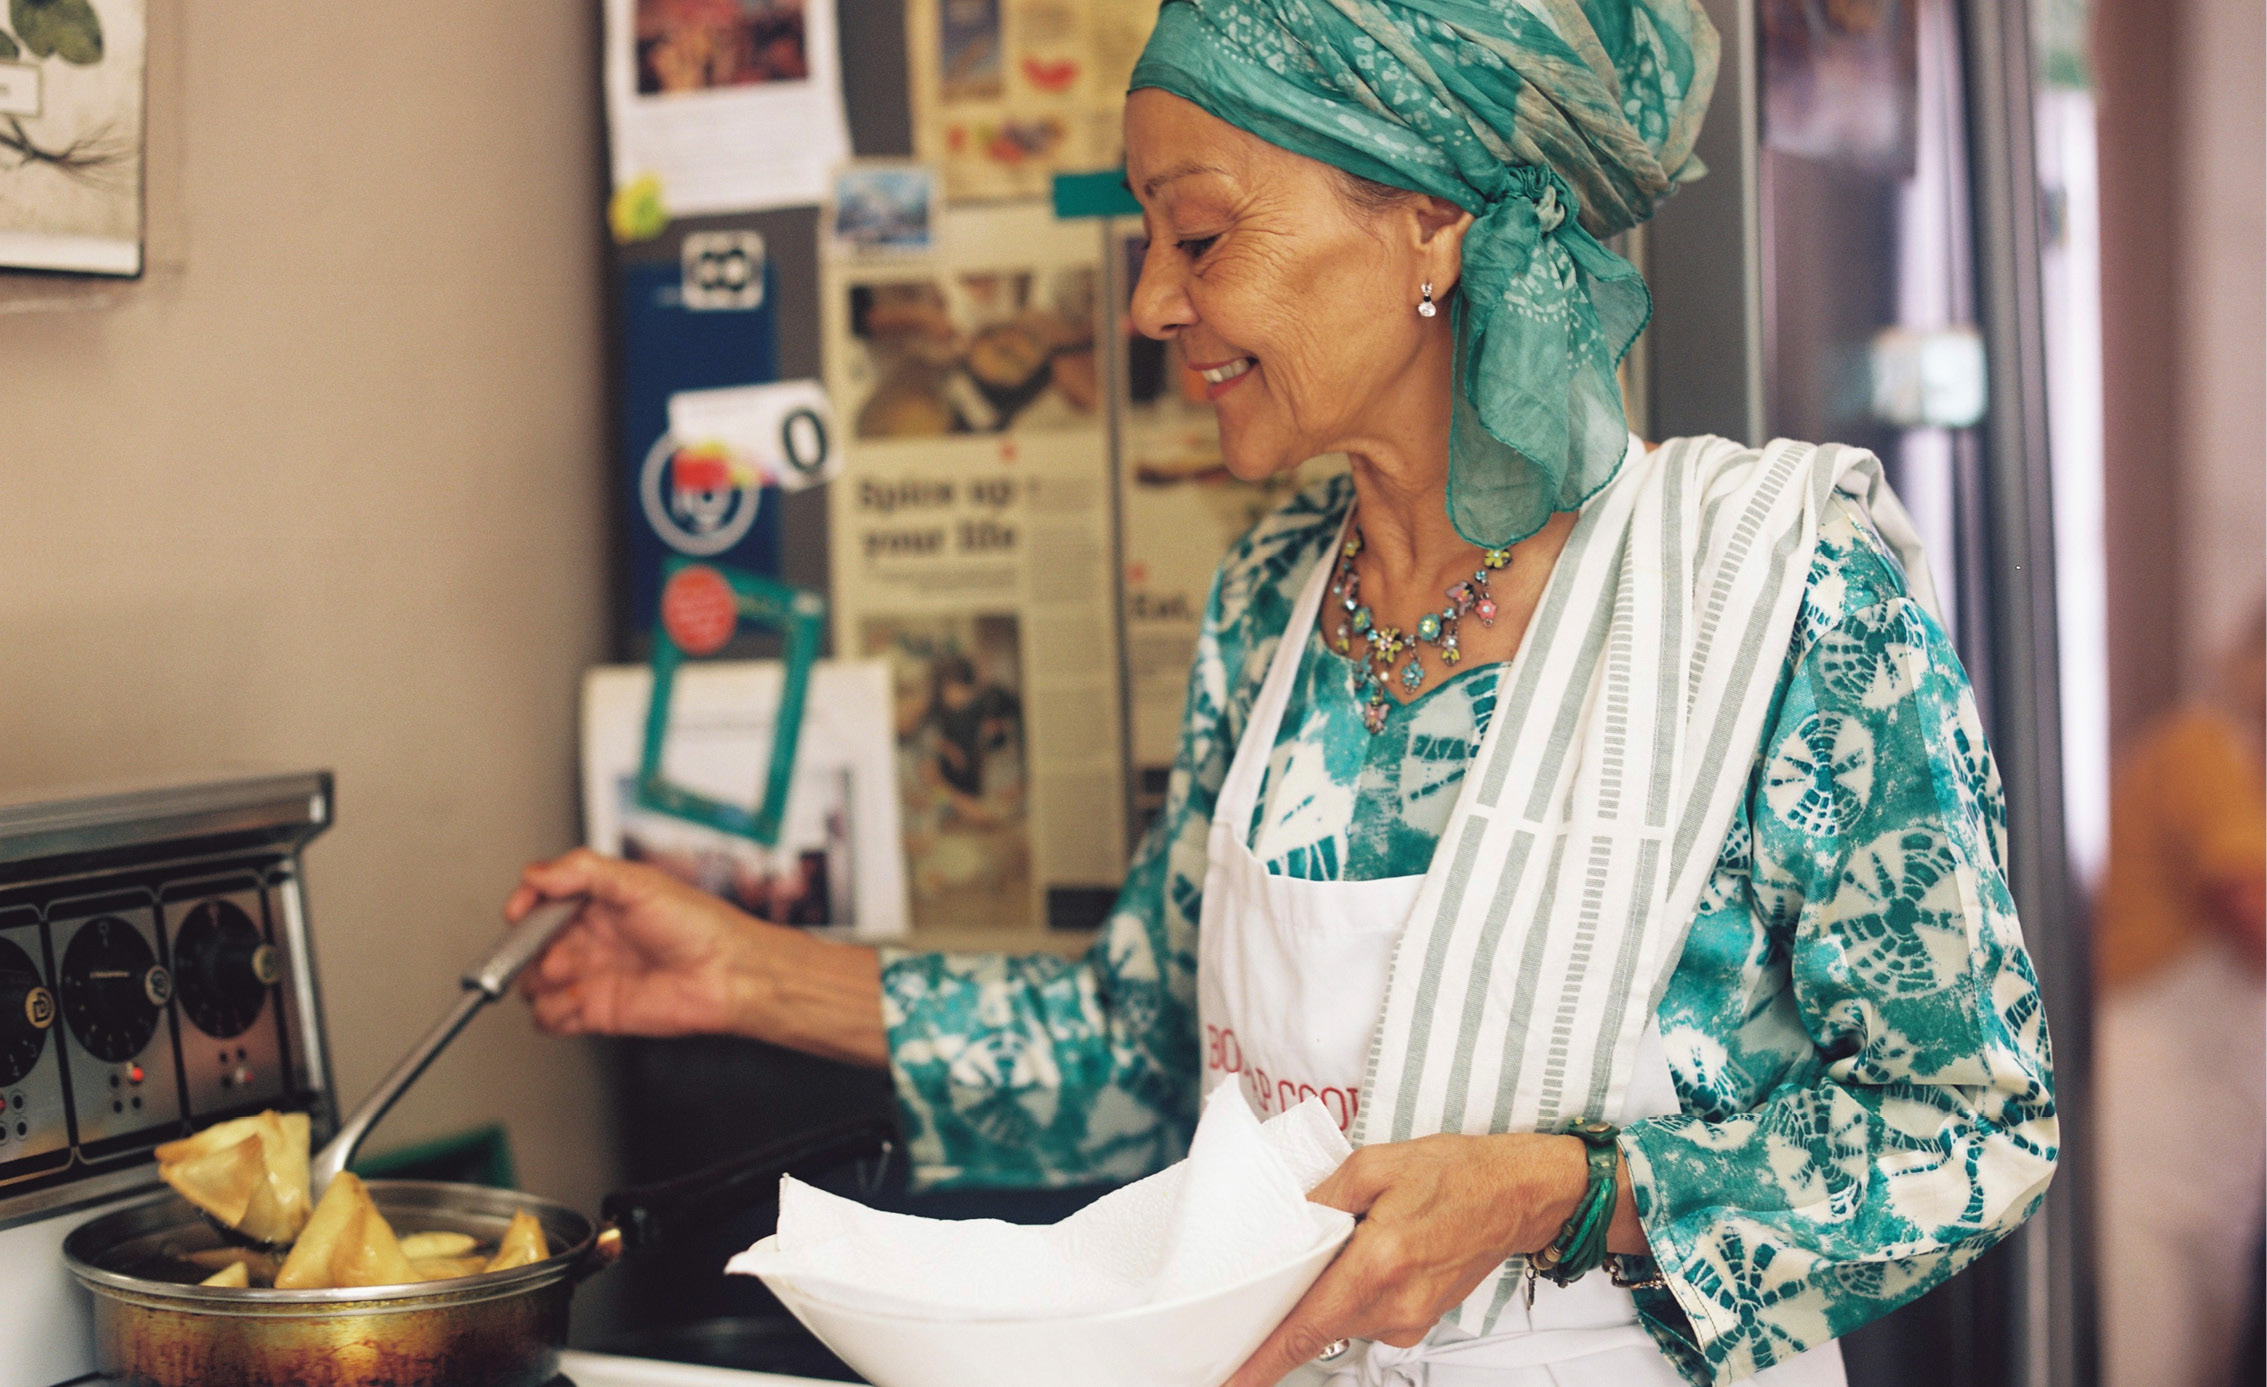 cape town culture cooking women kitchen